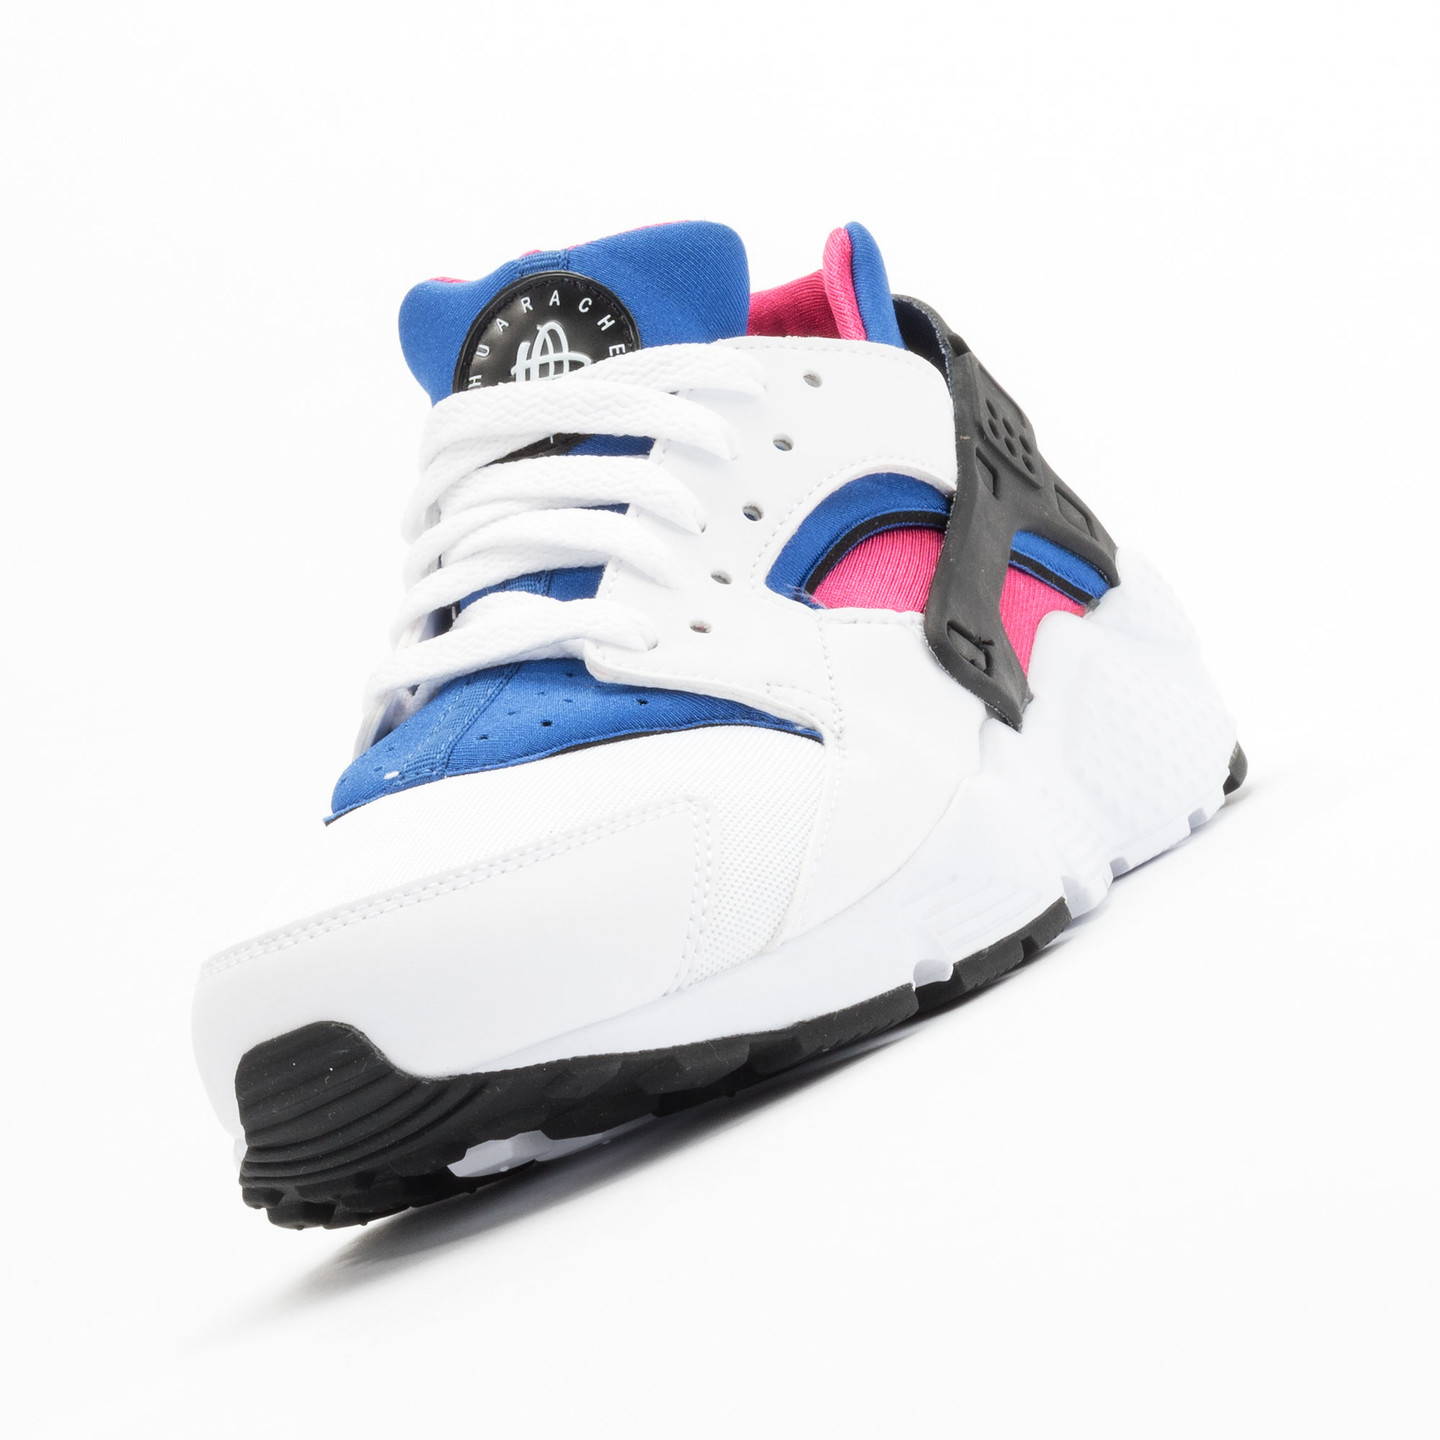 Nike Huarache Run GS White / Black / Game-Royal / Vivid-Pink 654275-106-36.5